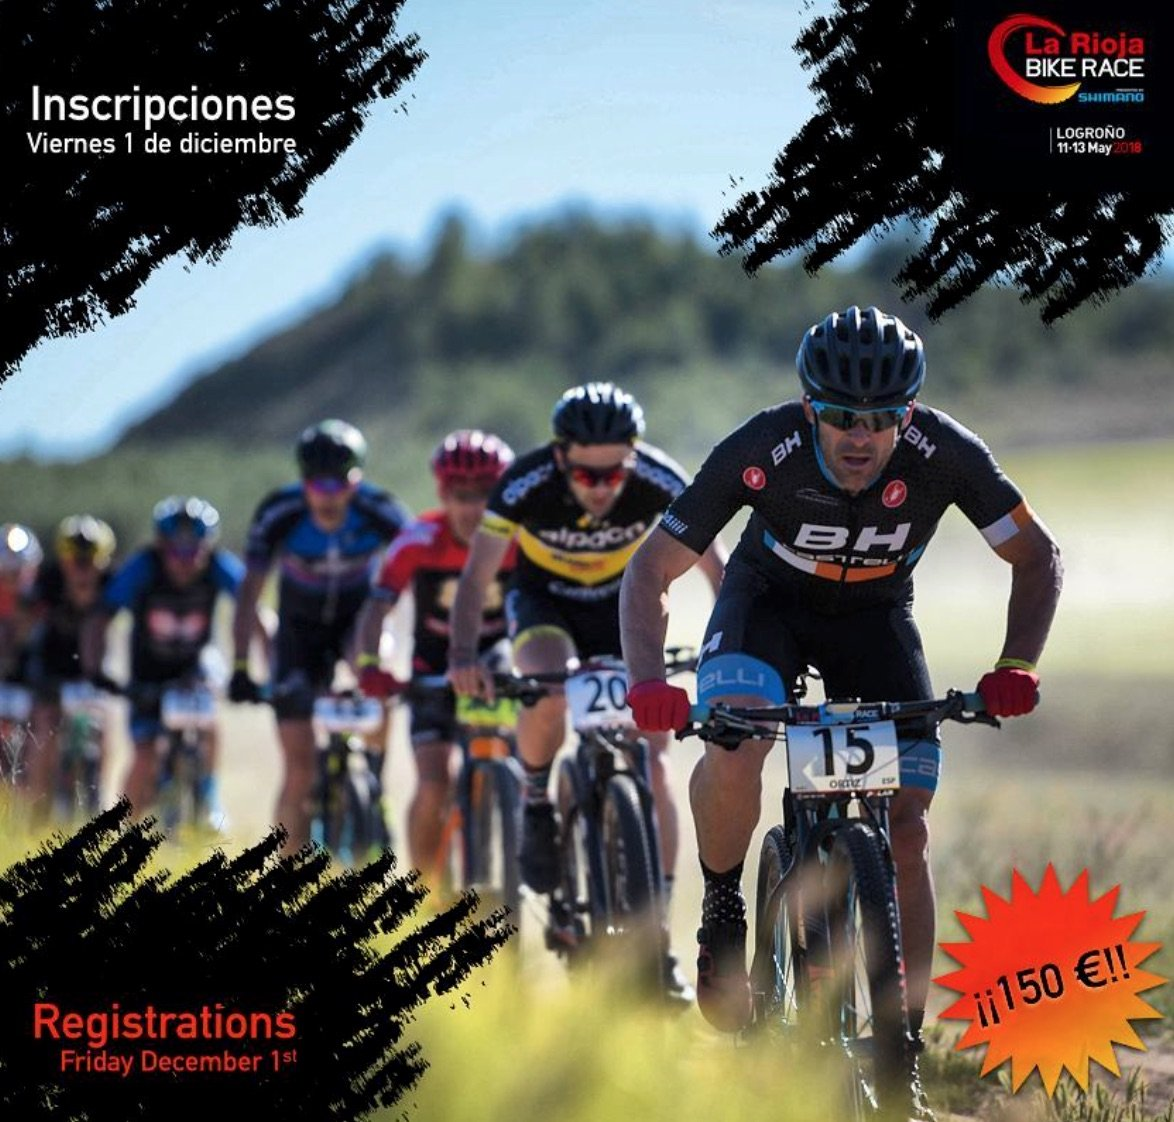 La Rioja Bike Race 2018